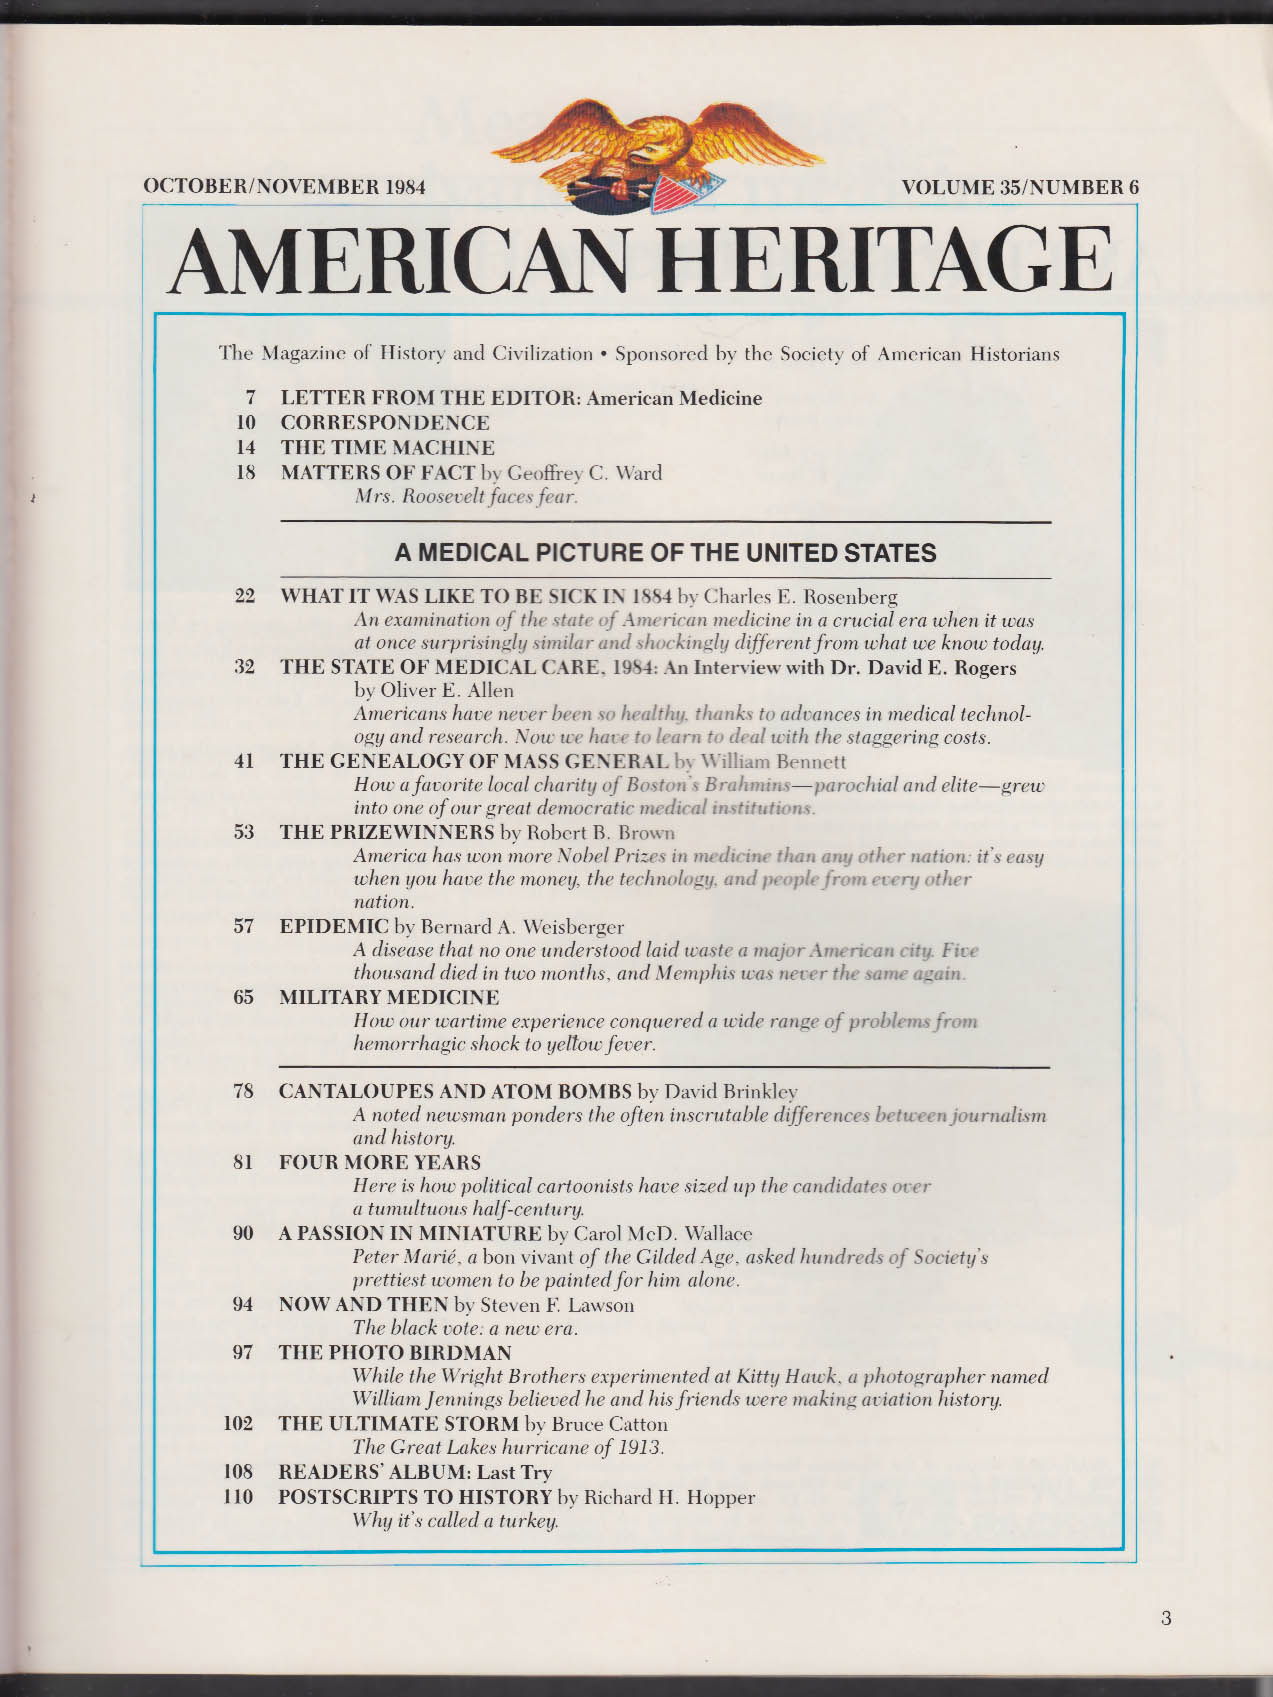 AMERICAN HERITAGE David E Rogers Peter Marie Wright Brothers + 10-11 1984